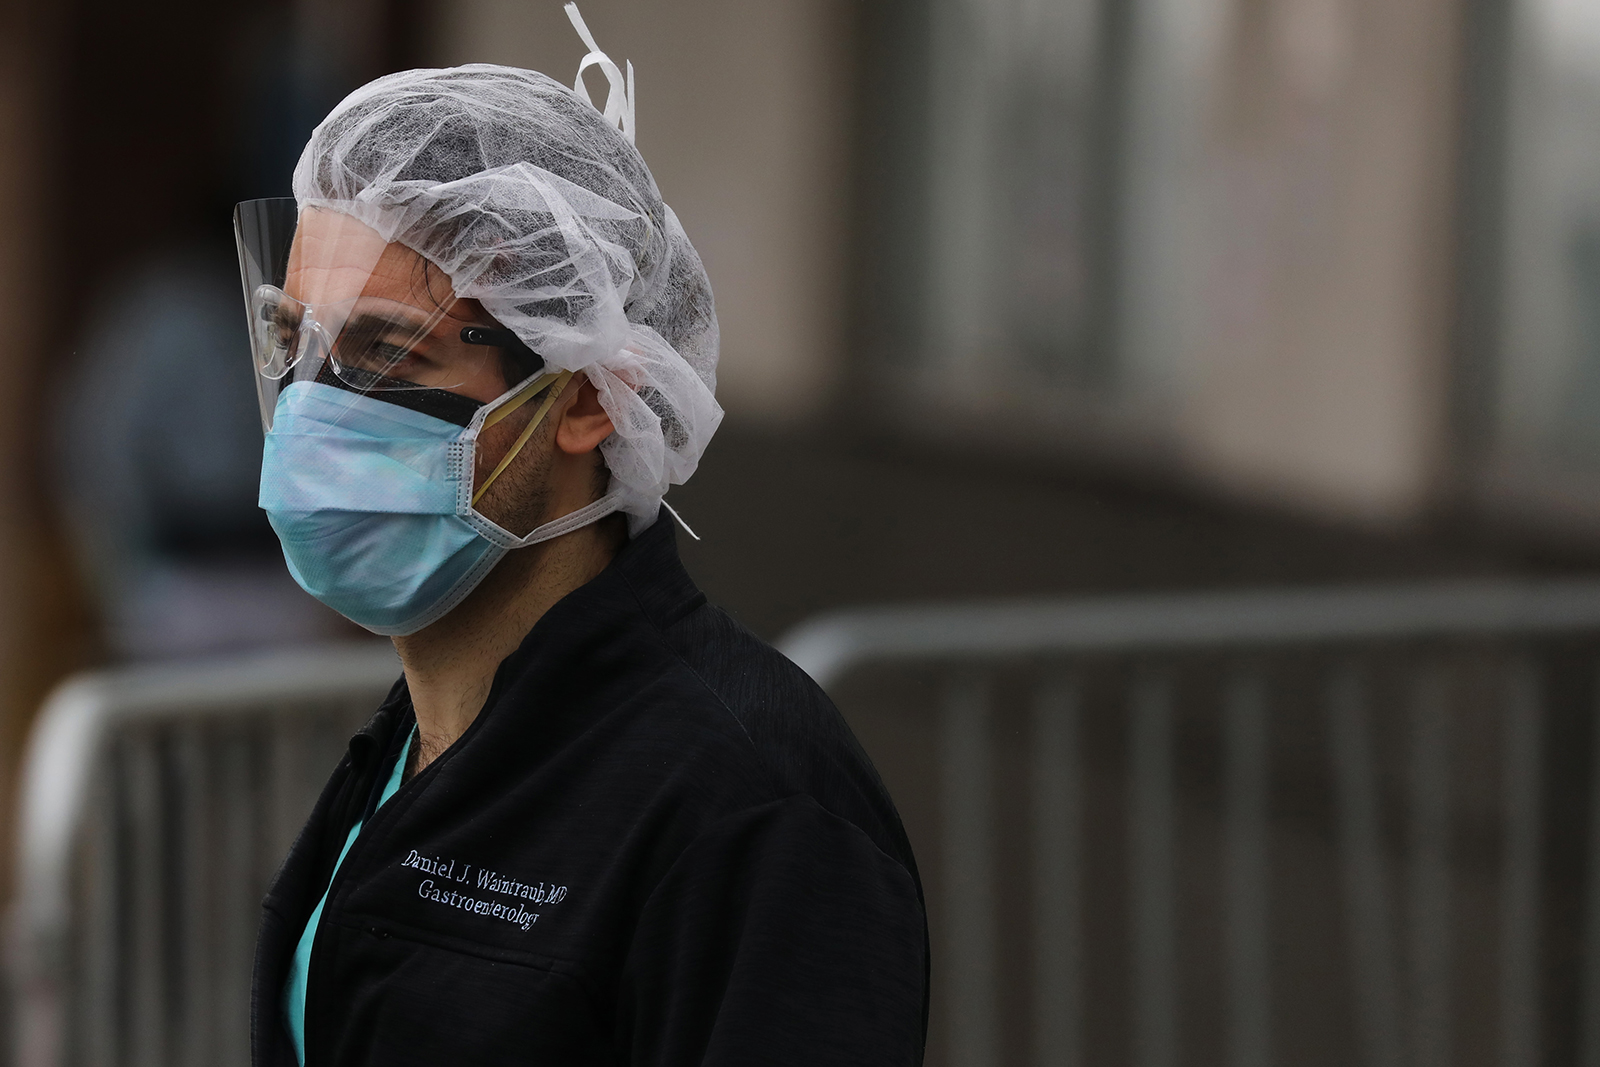 A medical worker stands outside of a special coronavirus intake area at Maimonides Medical Center on April 27, in New York City.